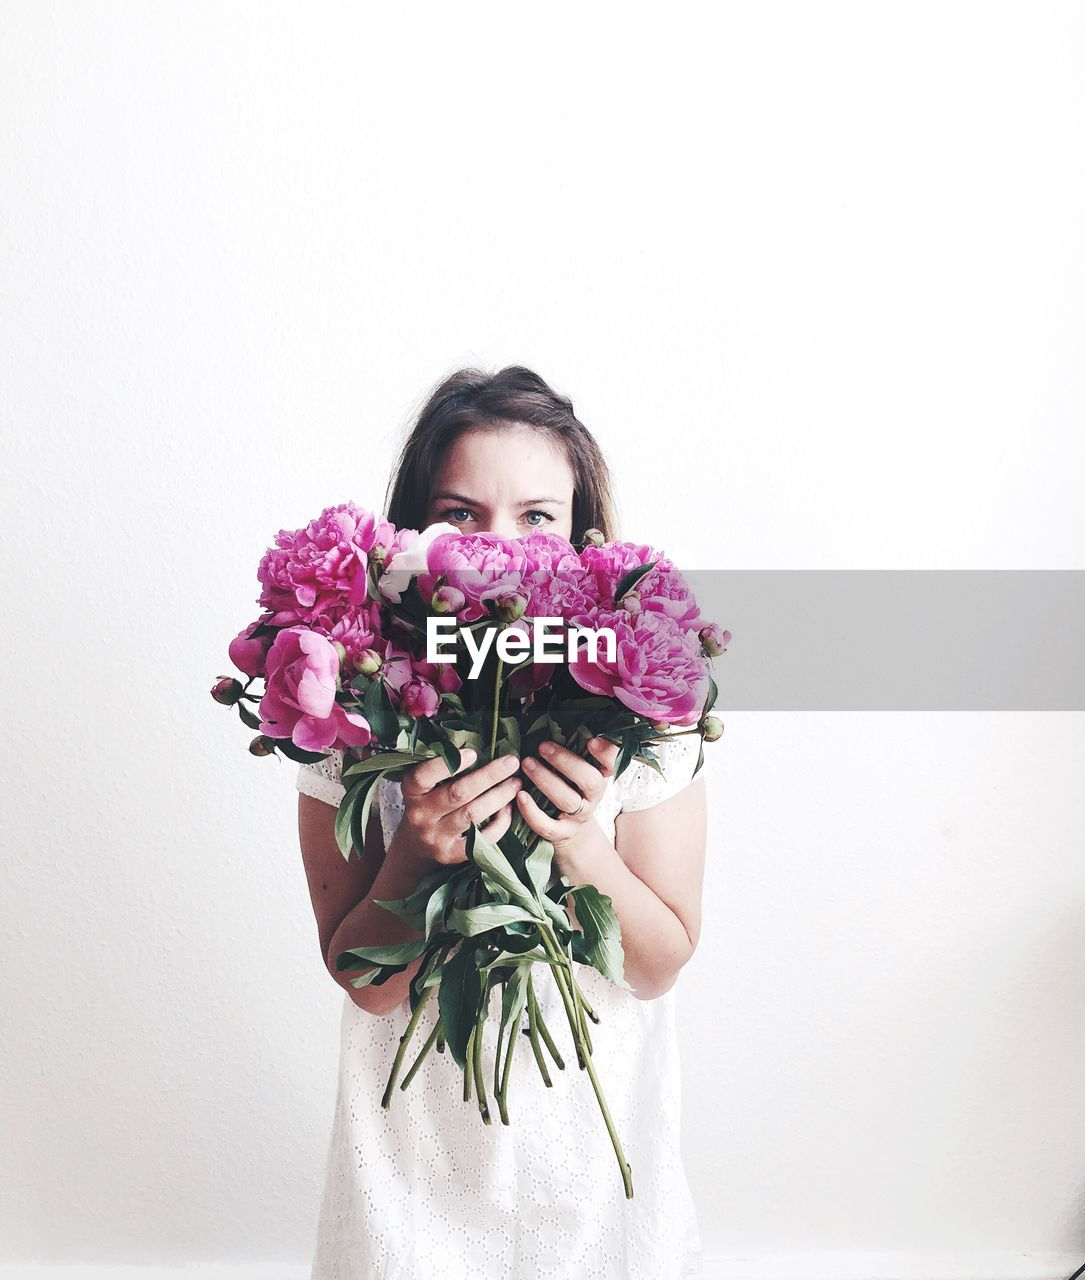 flowering plant, flower, plant, one person, white background, indoors, front view, vulnerability, beauty in nature, freshness, fragility, flower arrangement, studio shot, portrait, copy space, looking at camera, holding, nature, bouquet, flower head, hairstyle, bunch of flowers